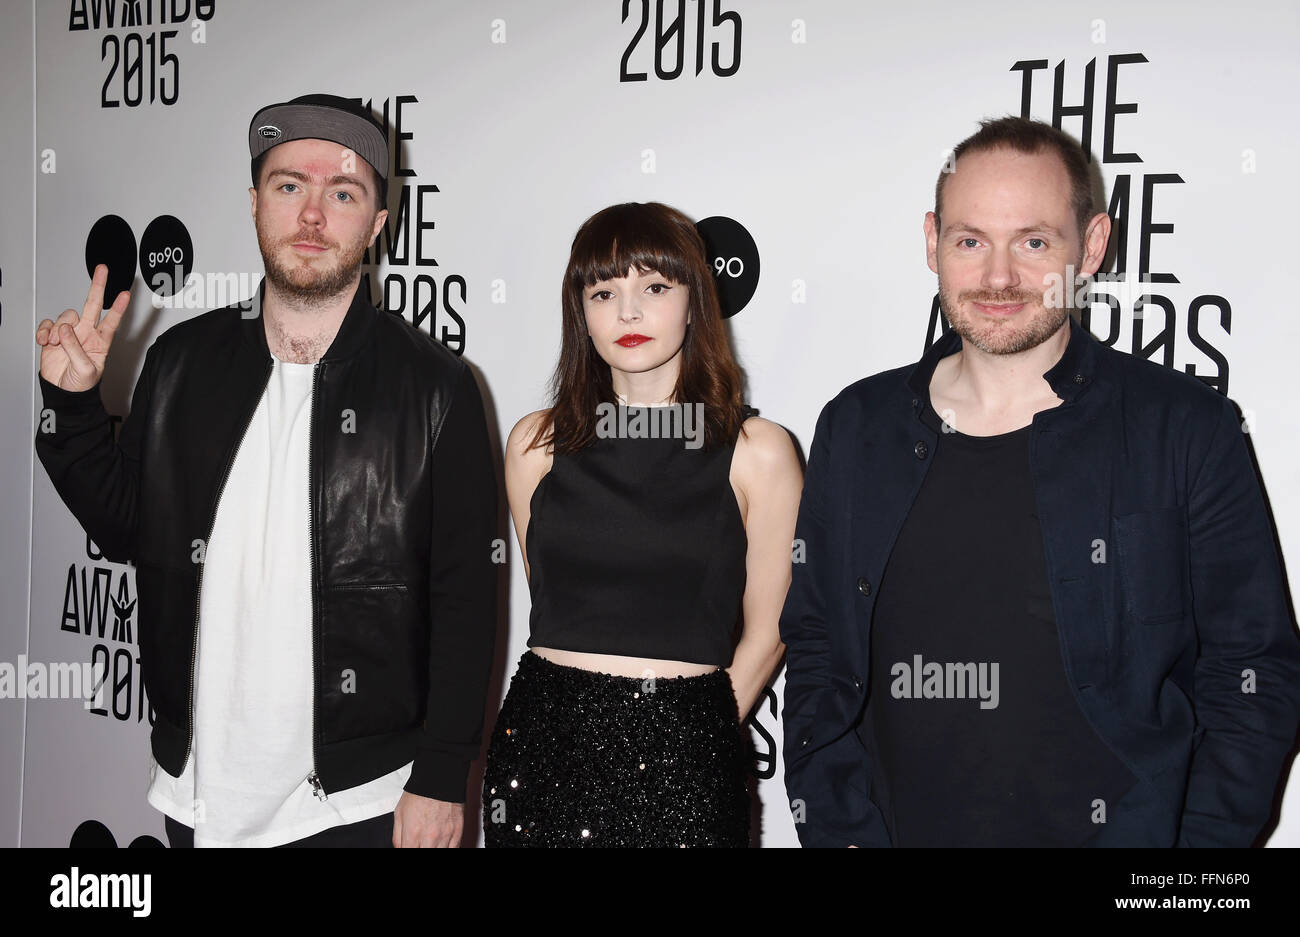 (L-R) Musicians Martin Doherty, Lauren Mayberry and Iain Cook of Chvrches arrive at The Game Awards 2015 / Arrivals - Stock Image